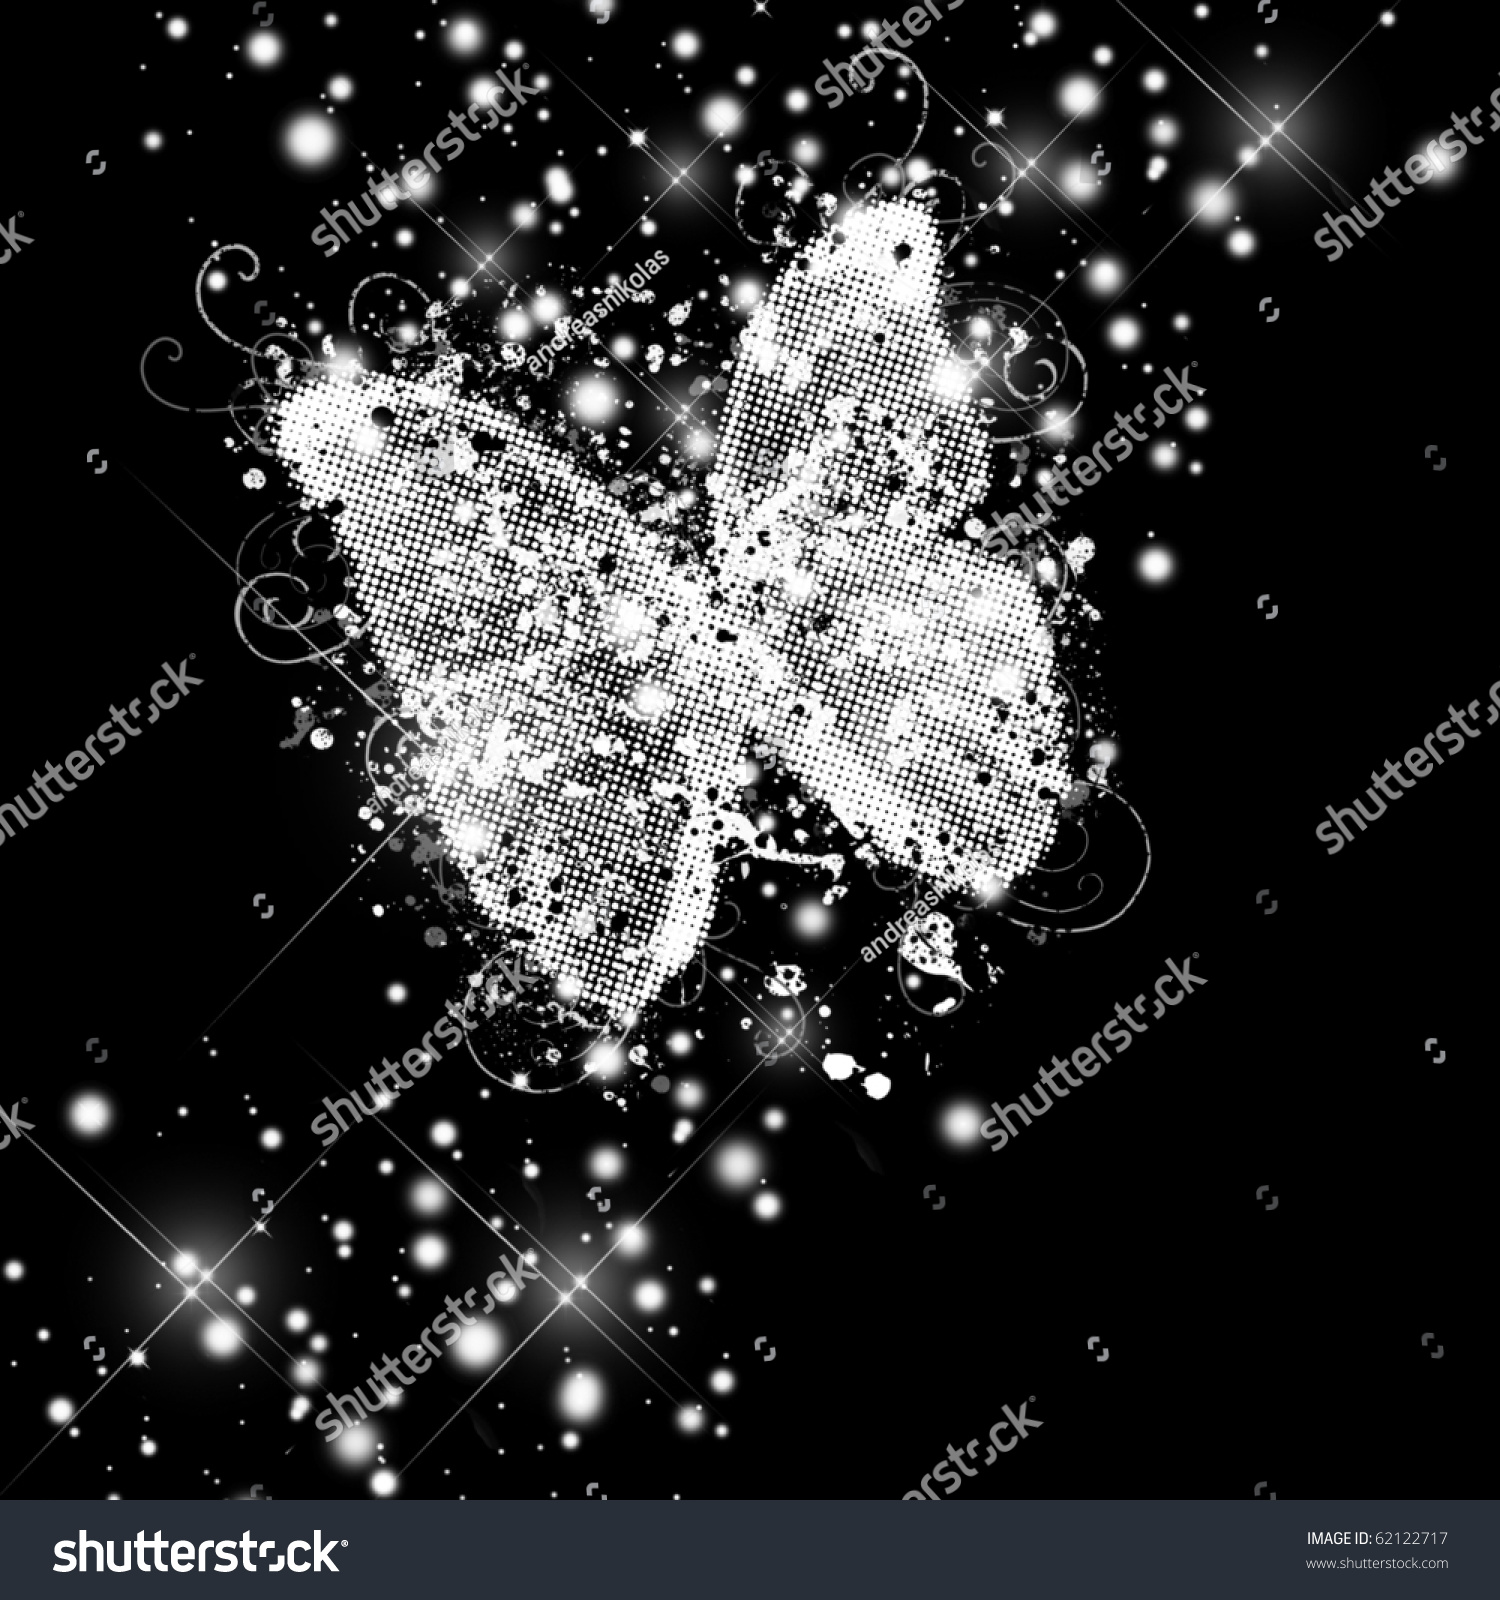 Abstract Glamorous Butterfly On Black Background Stock ...